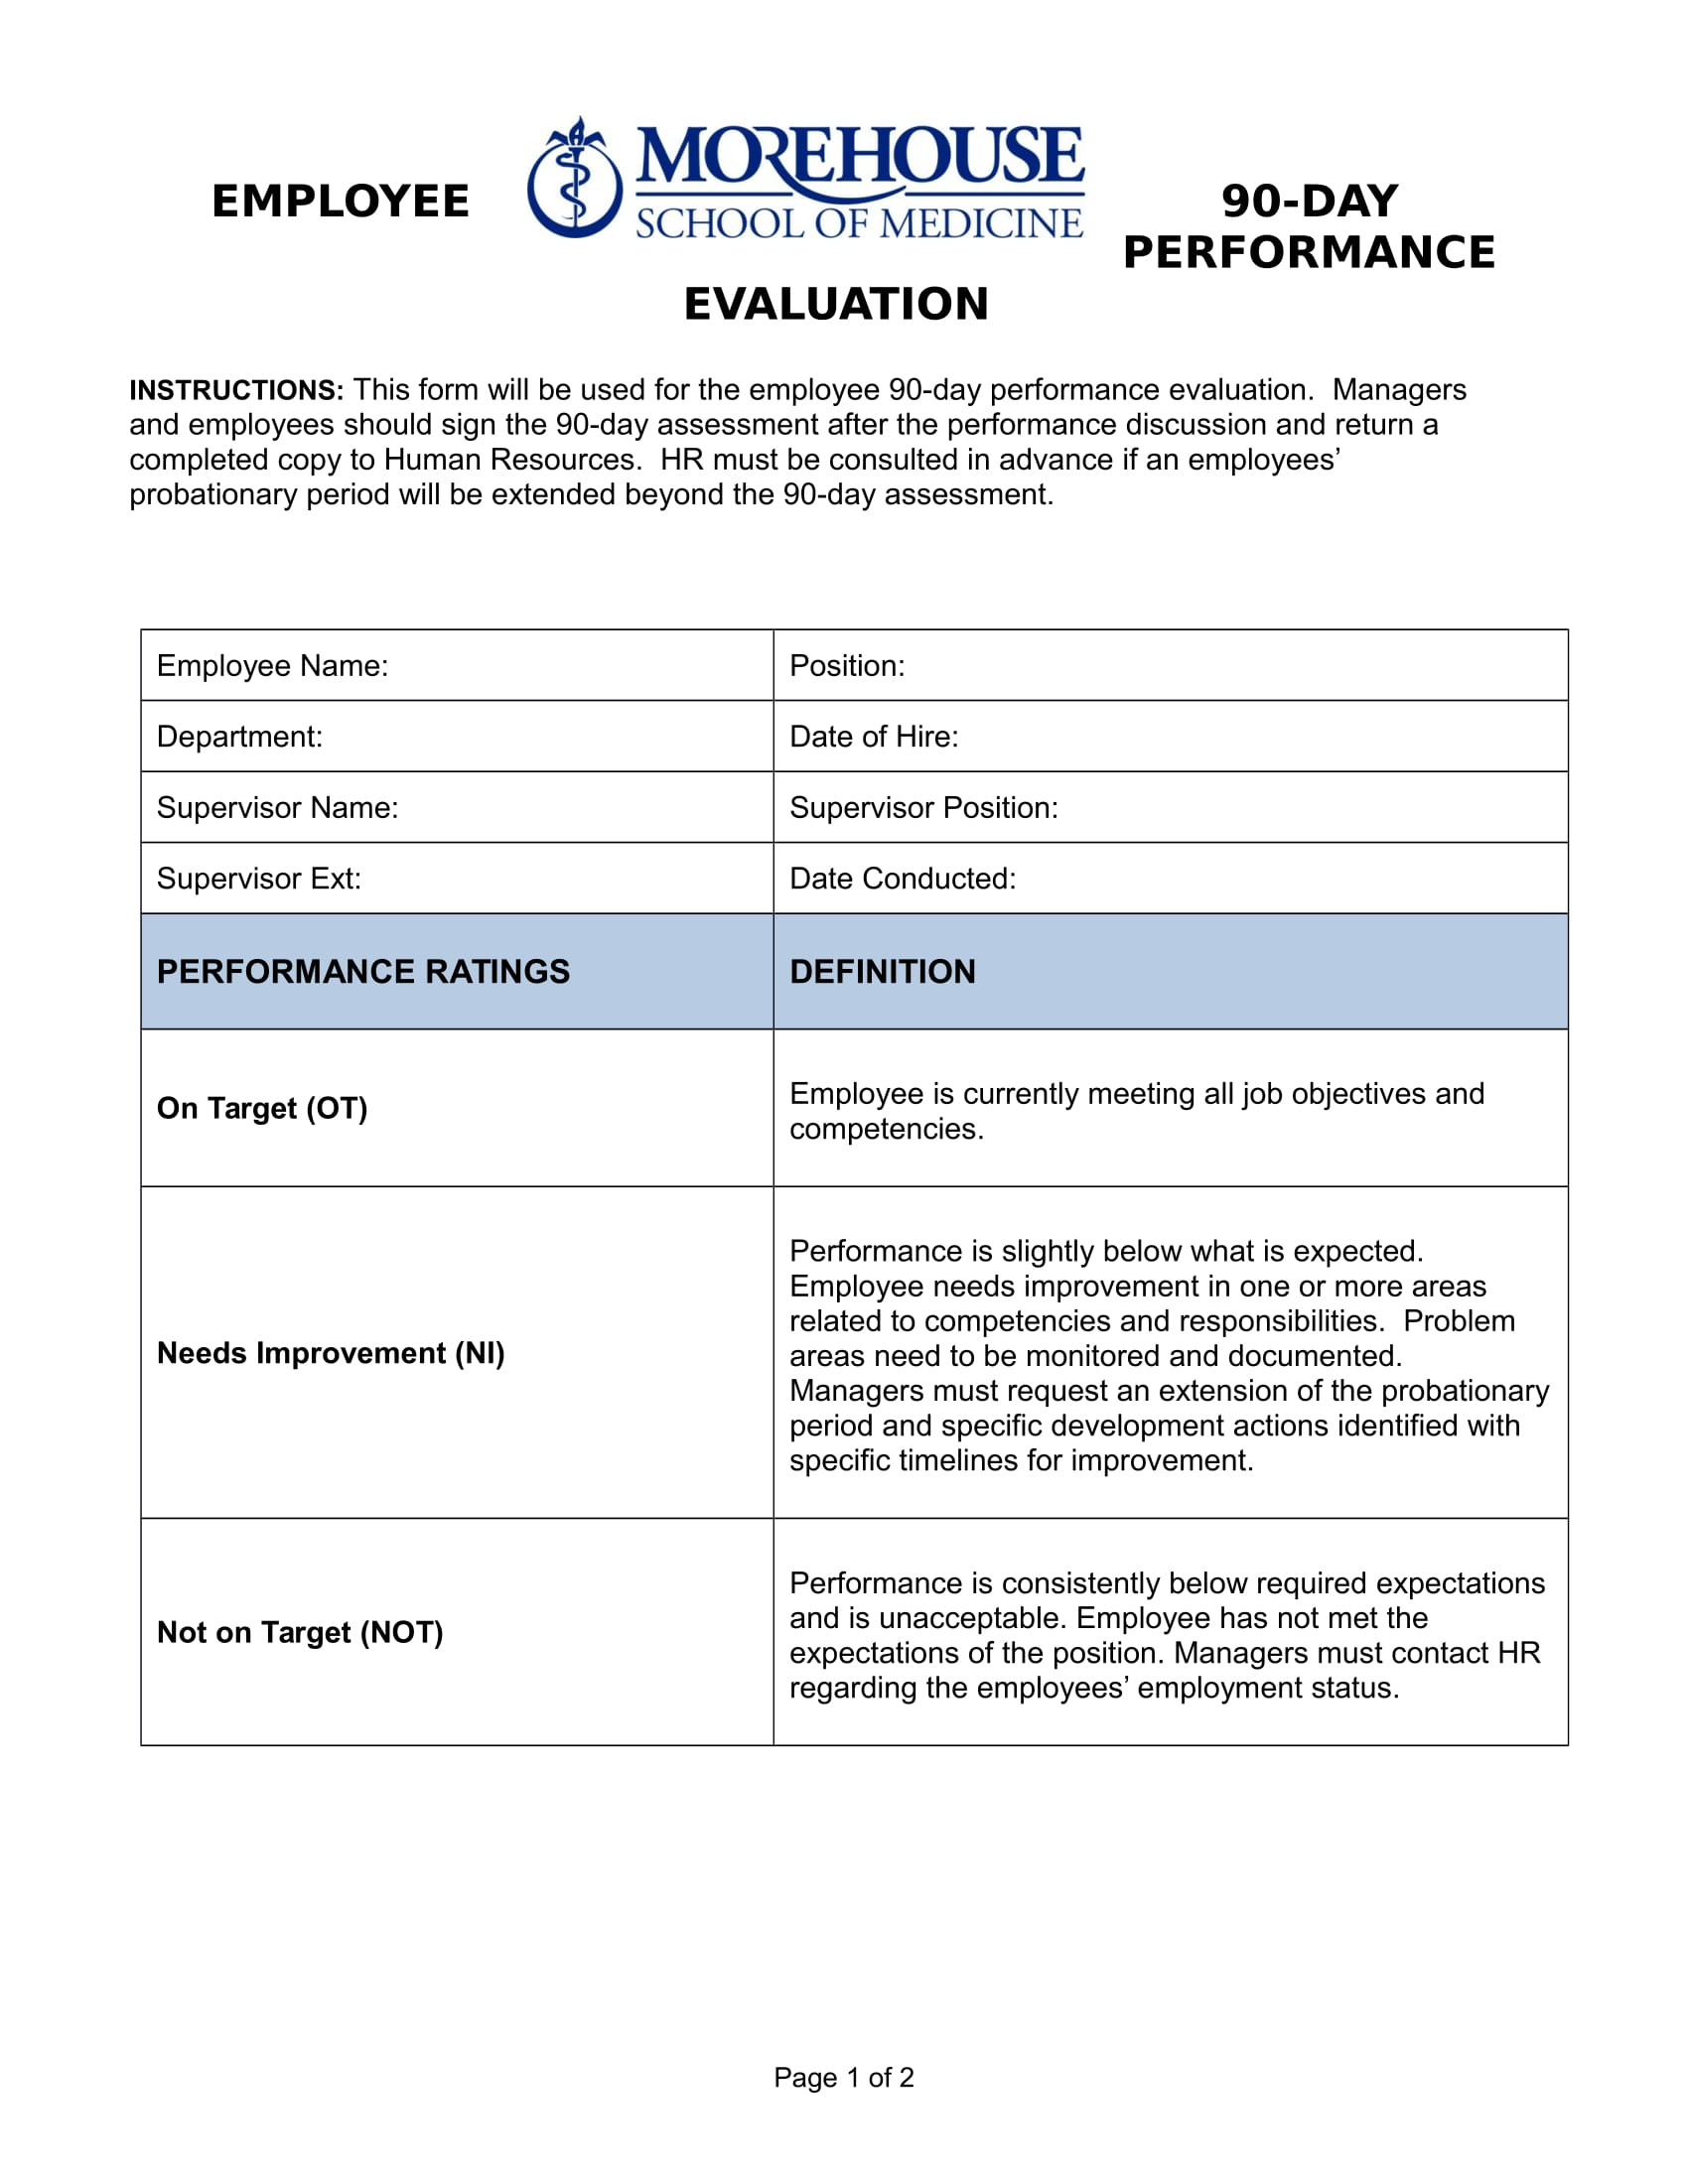 Performance Appraisal Template Word Free Non Objection Letter Free 90 Day  Staff Performance Evaluation Form 1